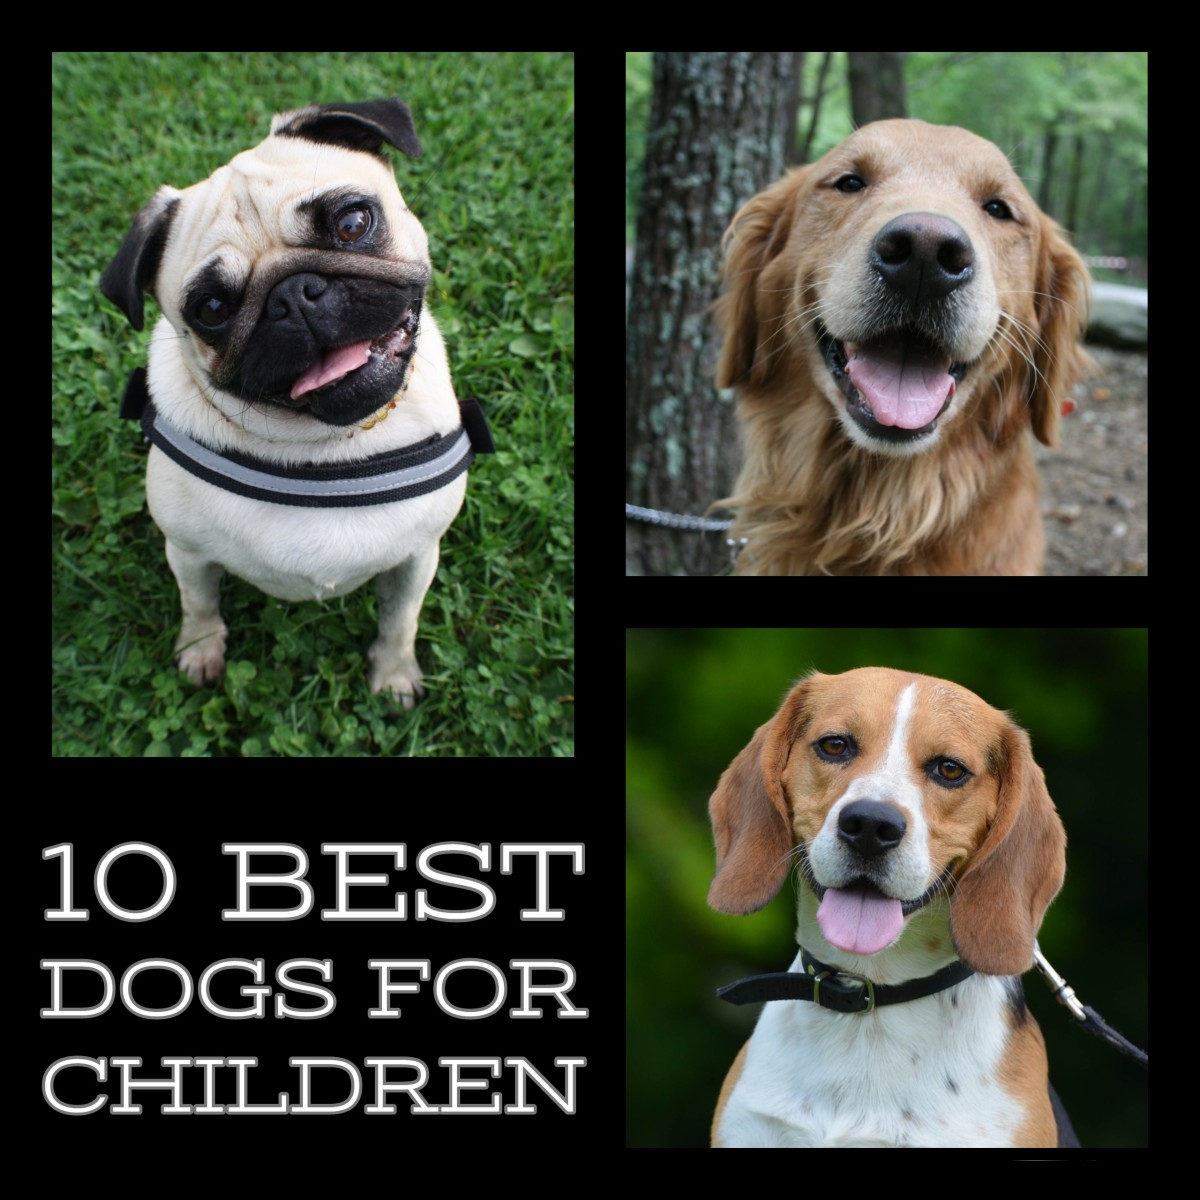 The 10 best dogs for kids.